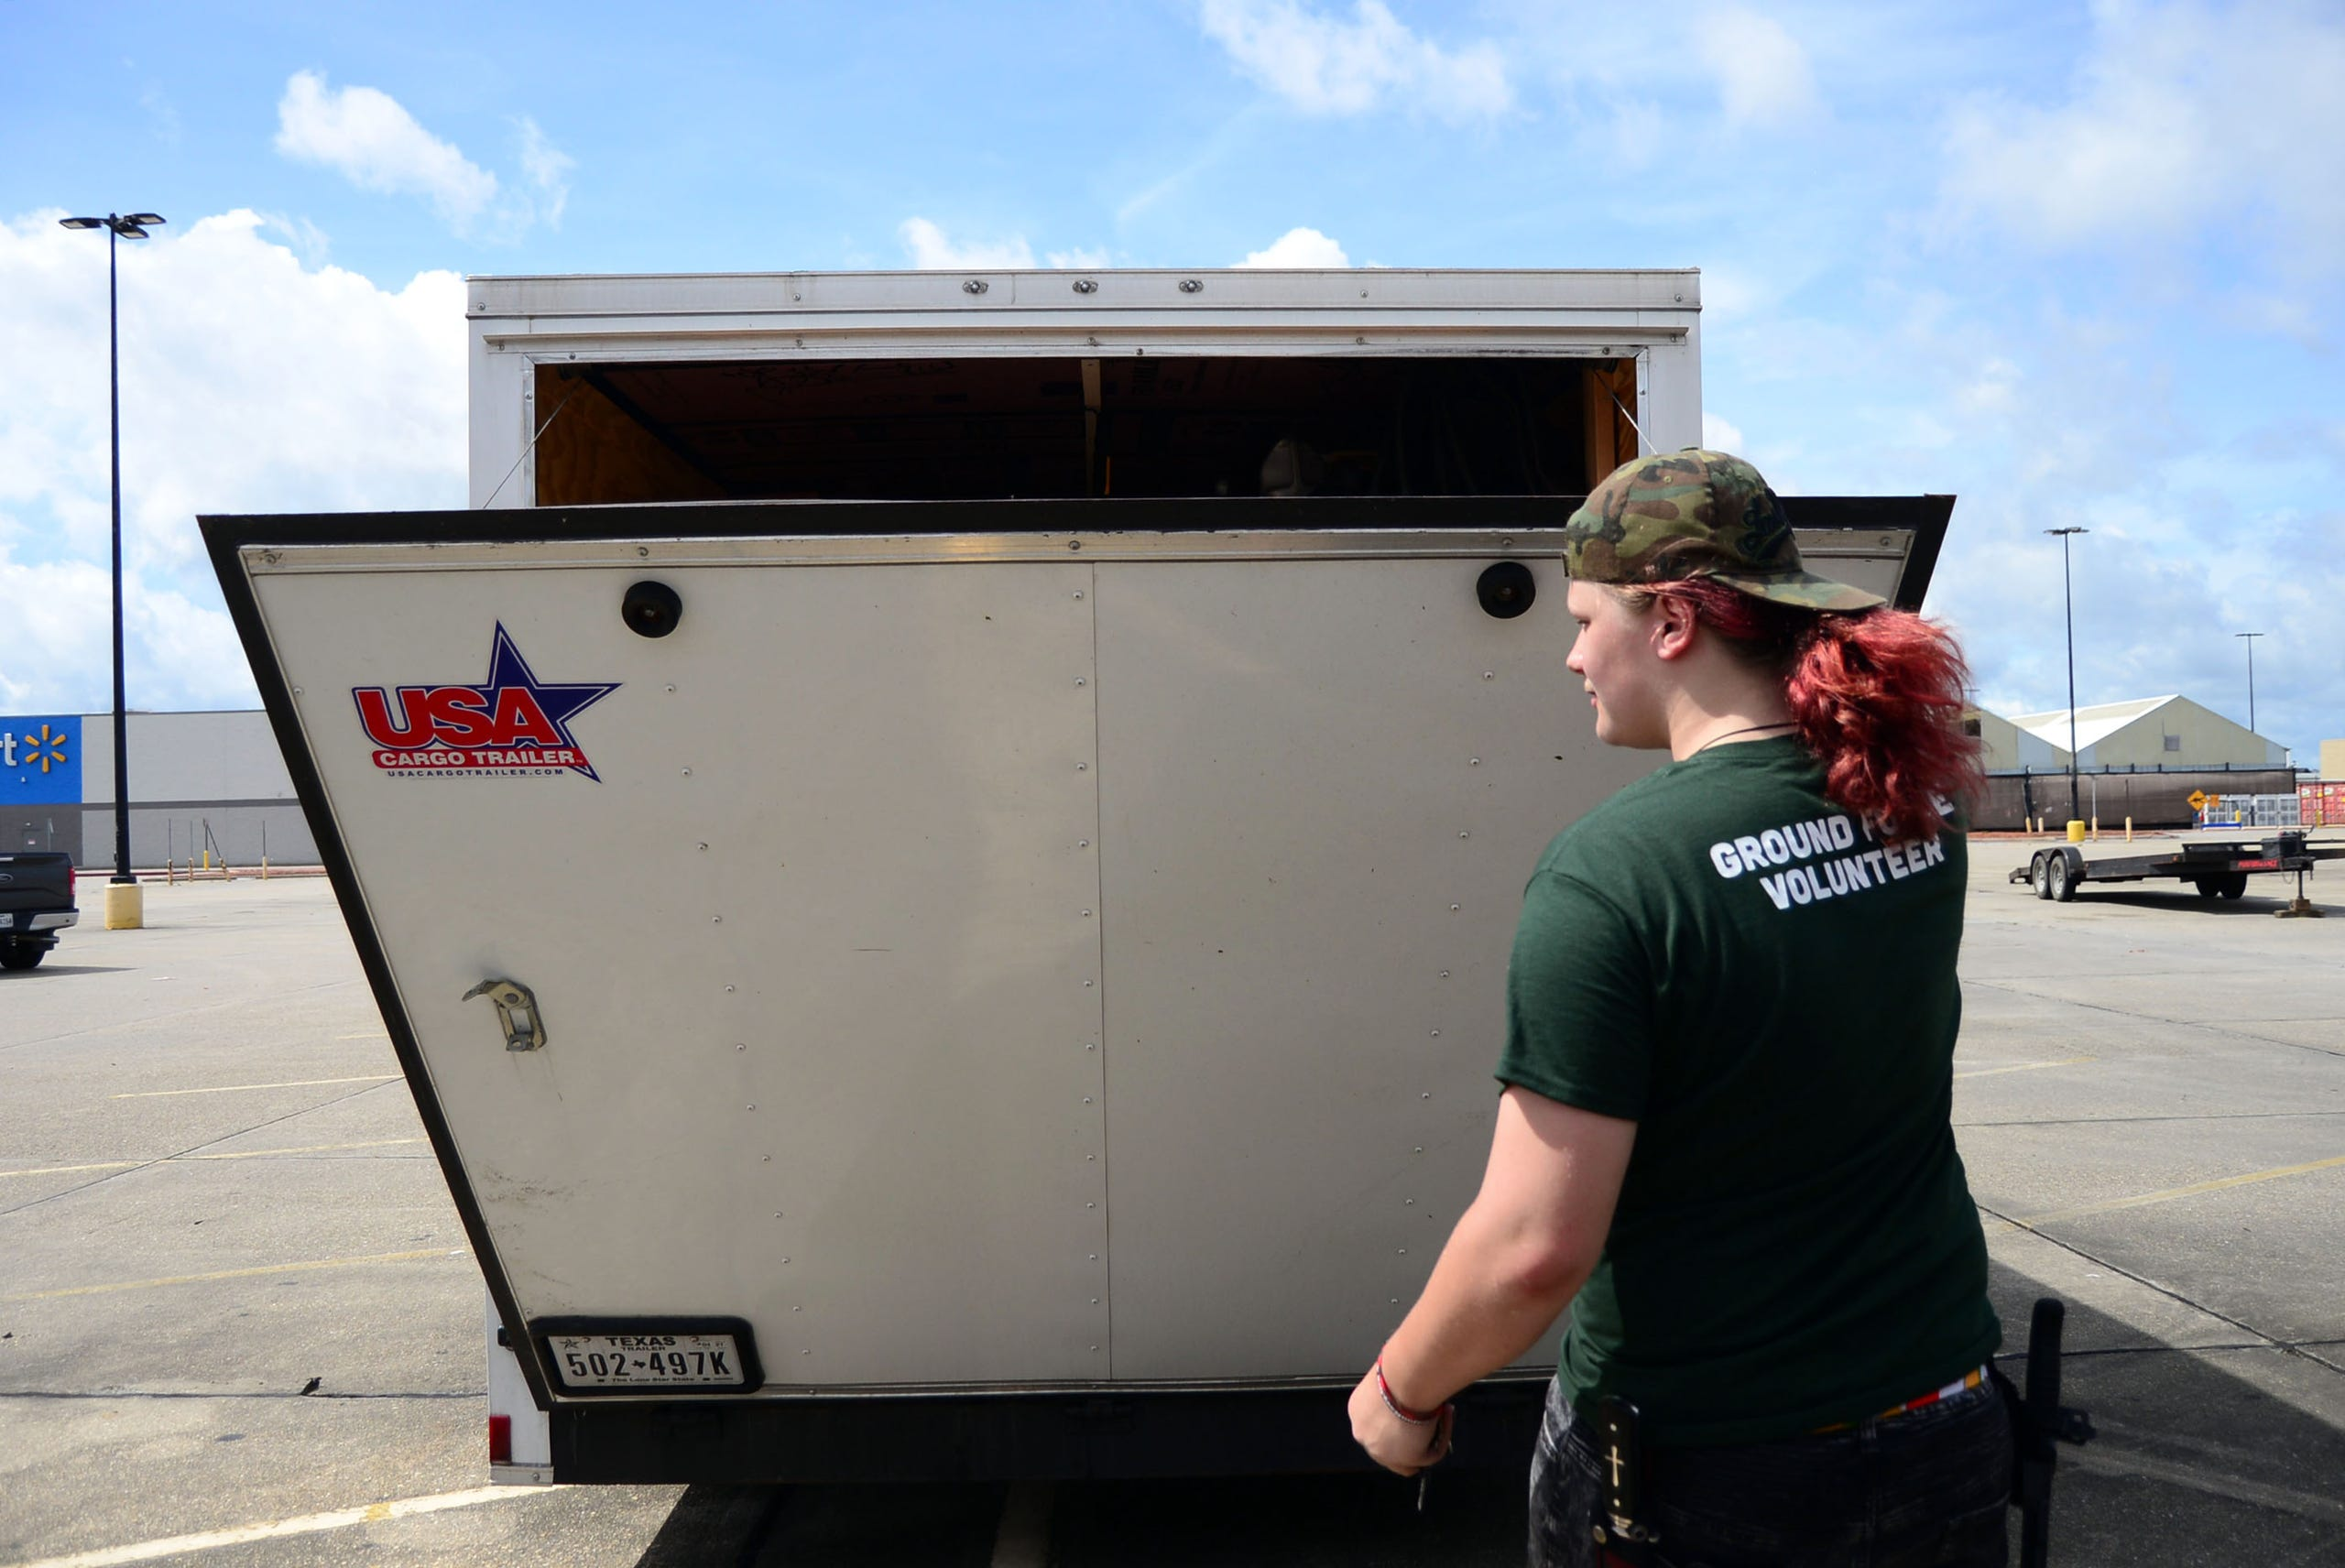 A teenage volunteer with the Cajun Navy Foundation's Ground Force opens the back of a Cajun Navy trailer containing supplies to distribute to residents in Houma.